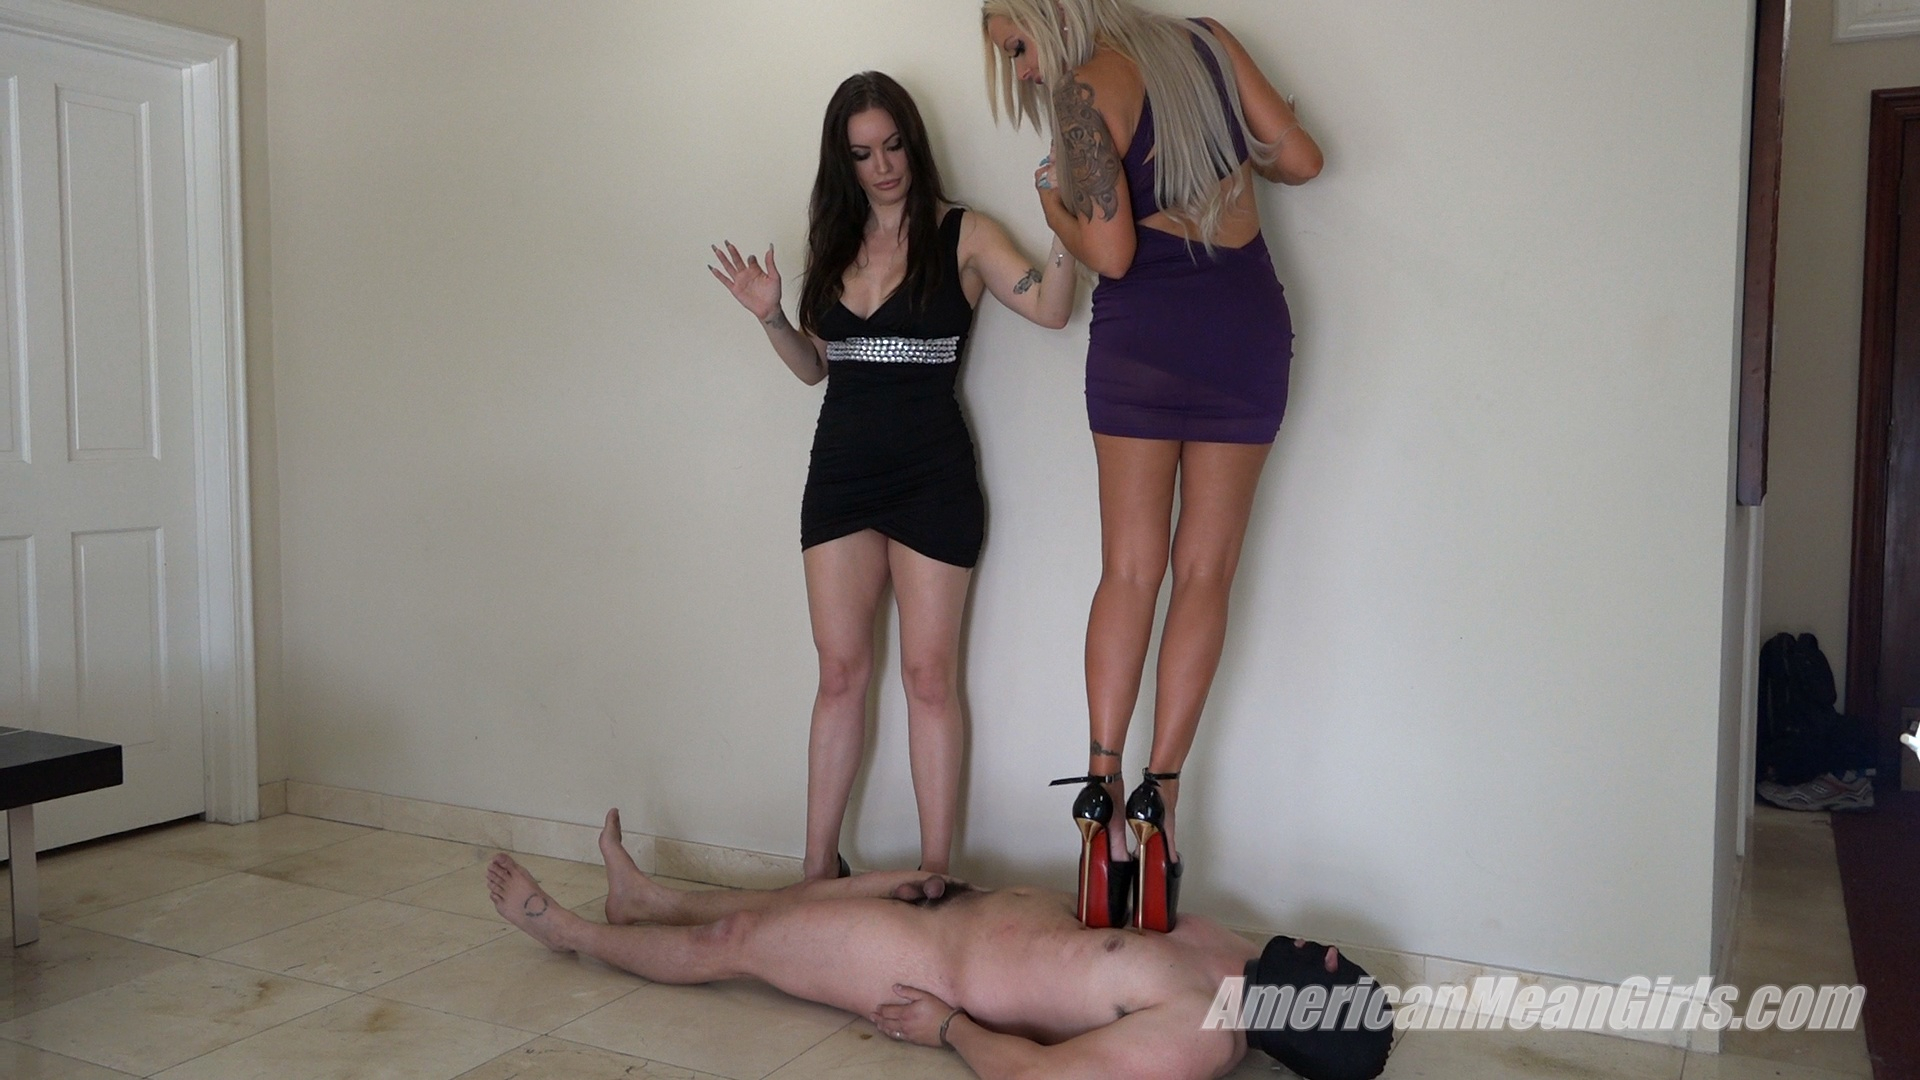 Amazon feet slave and blonde brutal gang 10